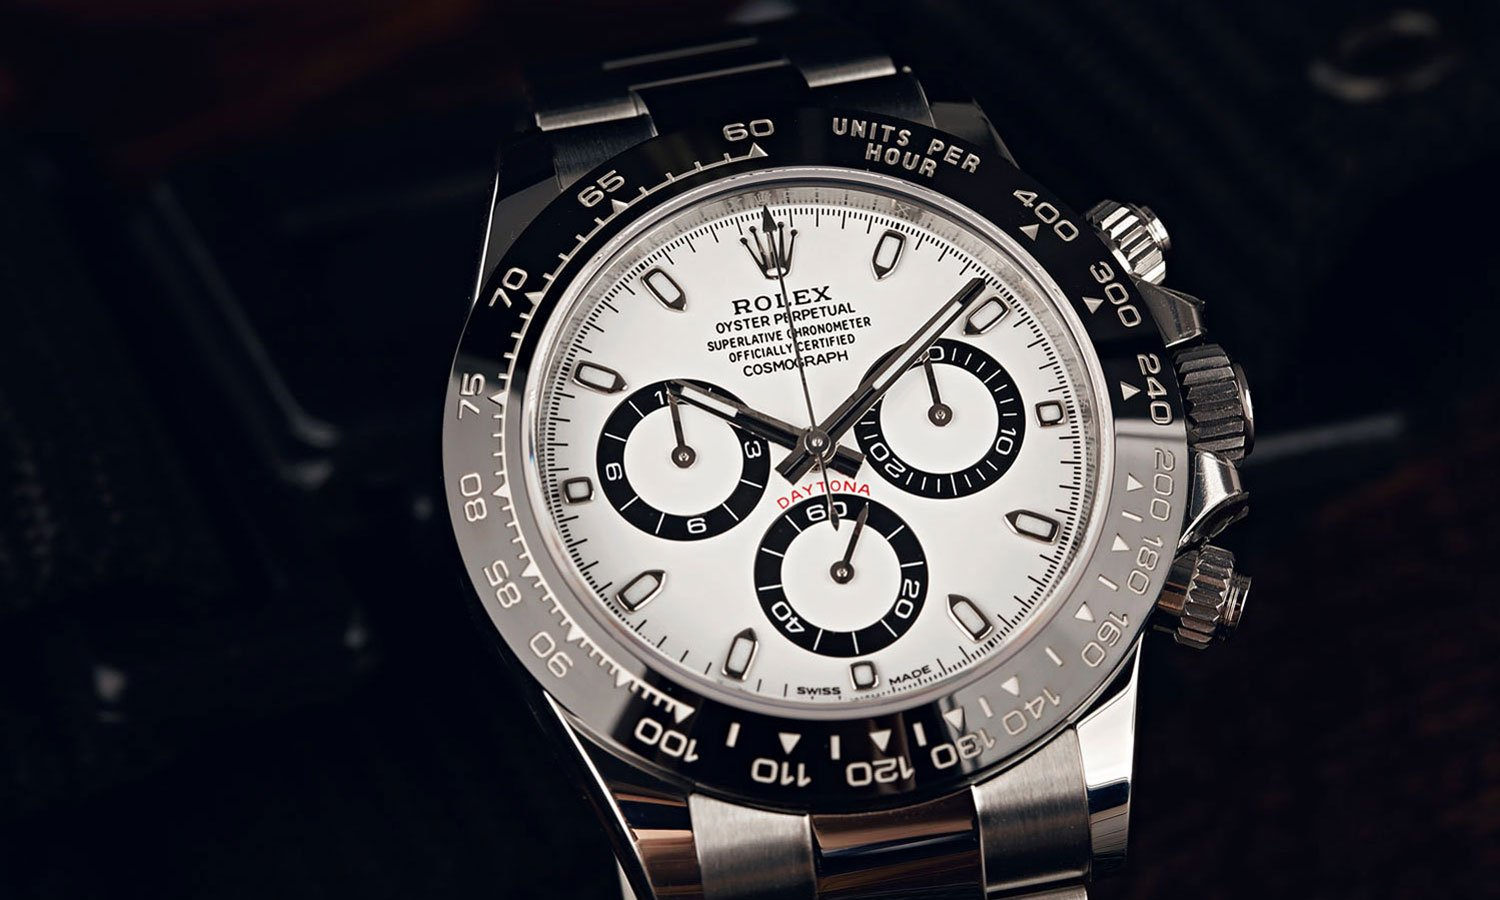 Ceramic or Steel Bezel? Rolex Daytona 116500 vs Daytona 116520